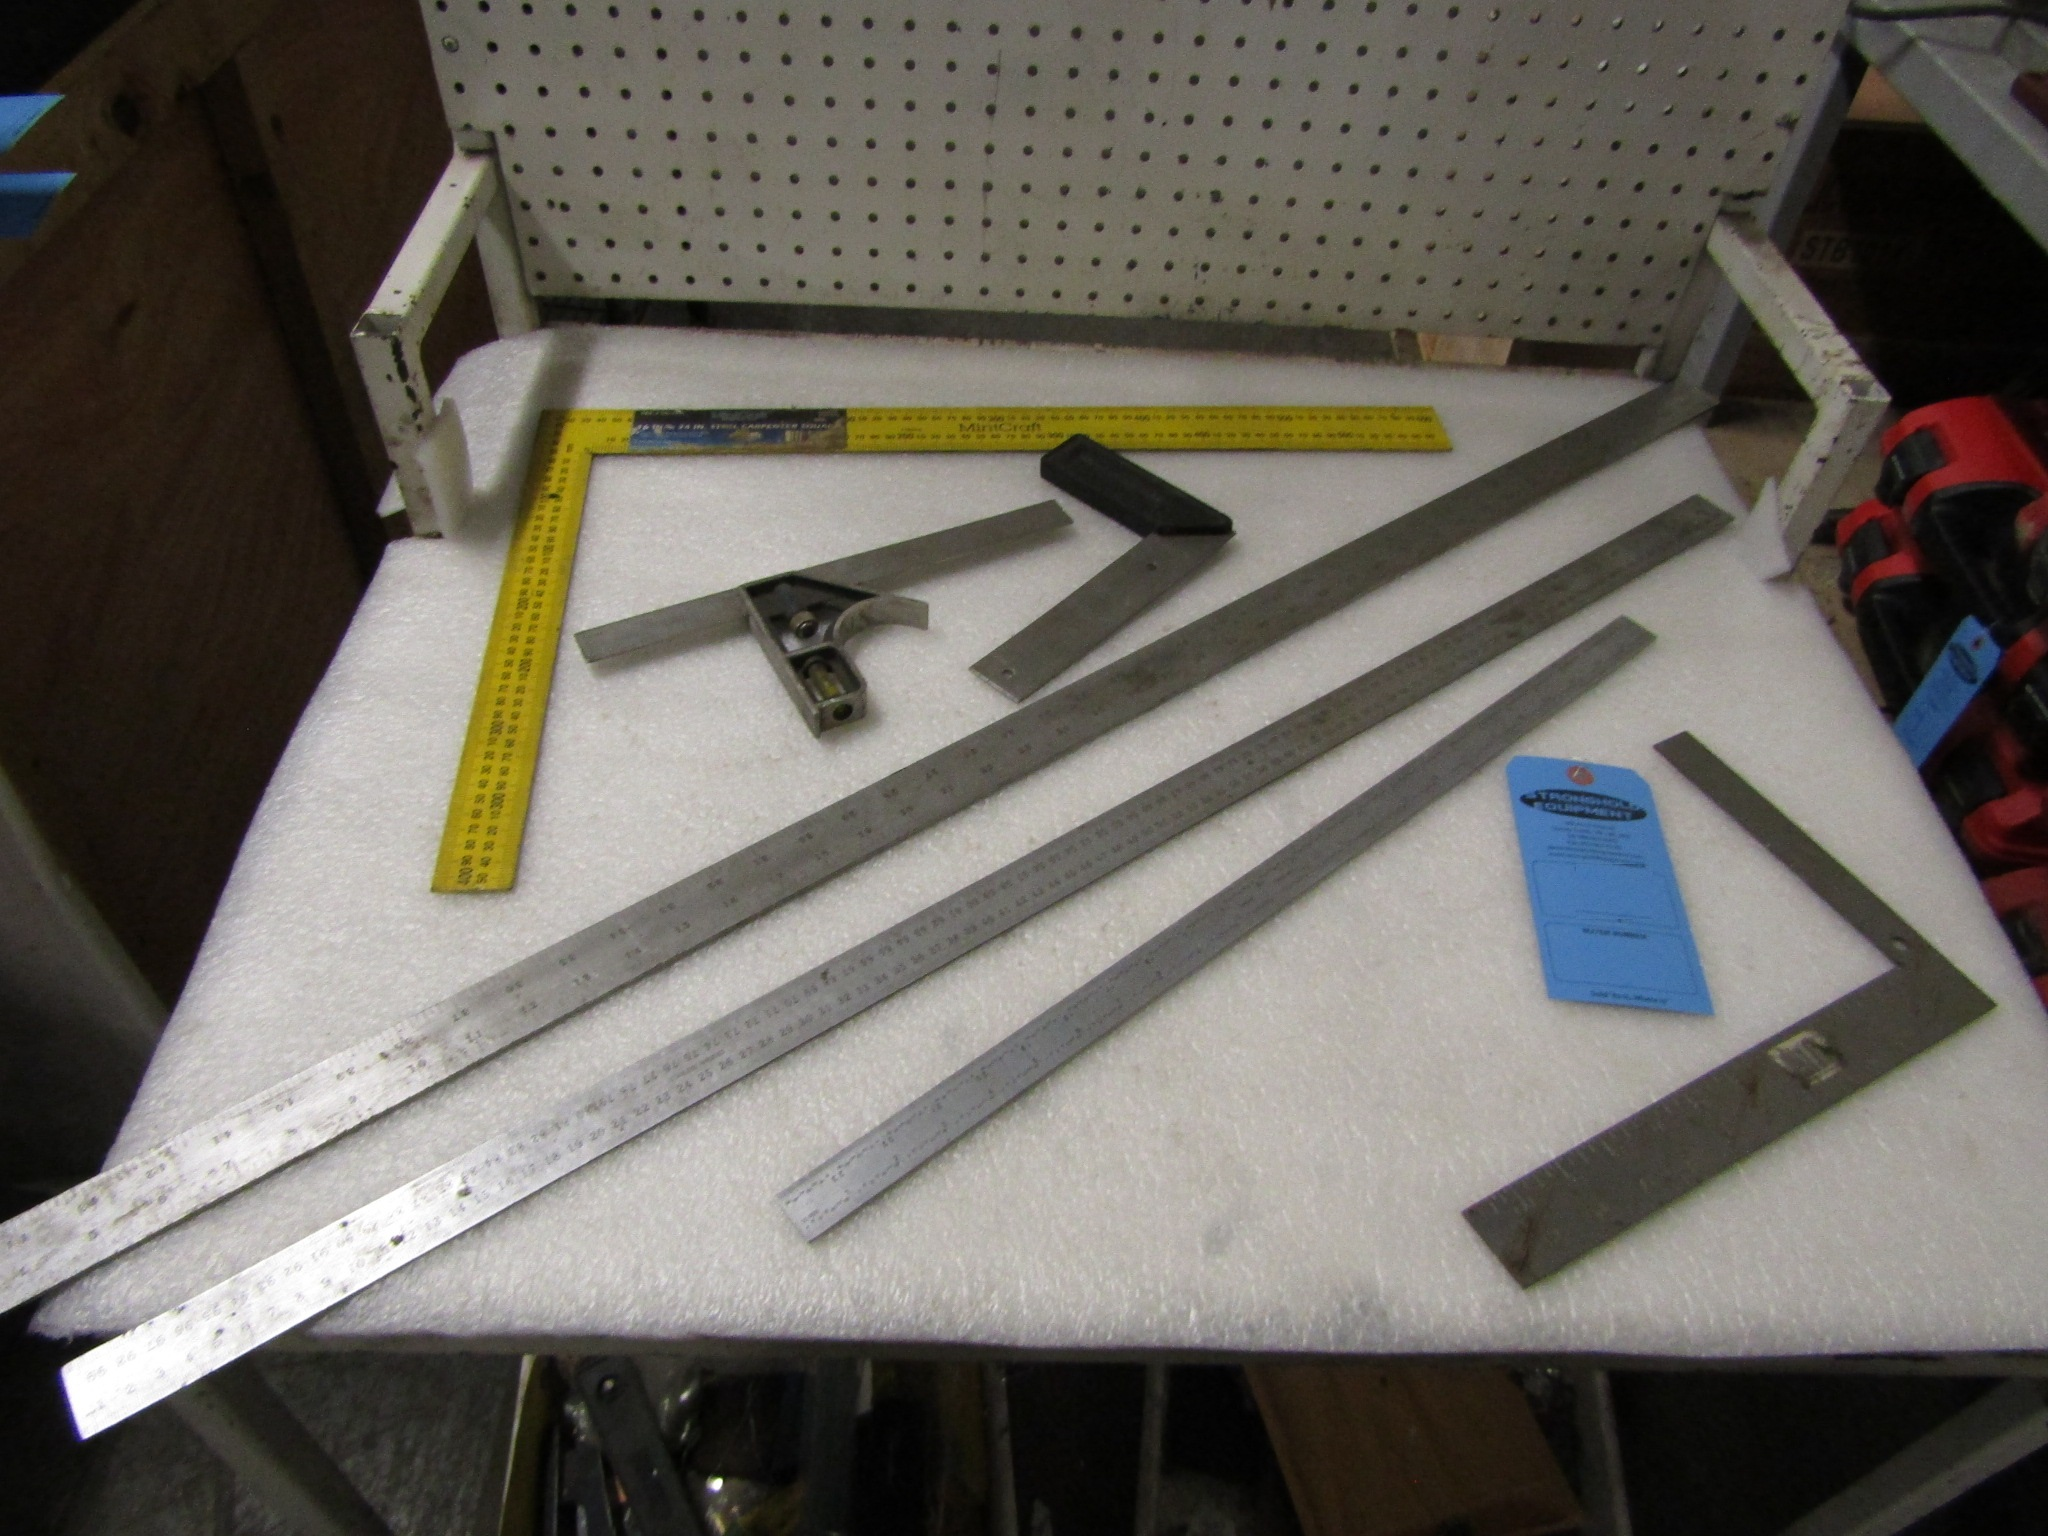 Lot 11 - Lot of Precision Measruing tools including precision squares